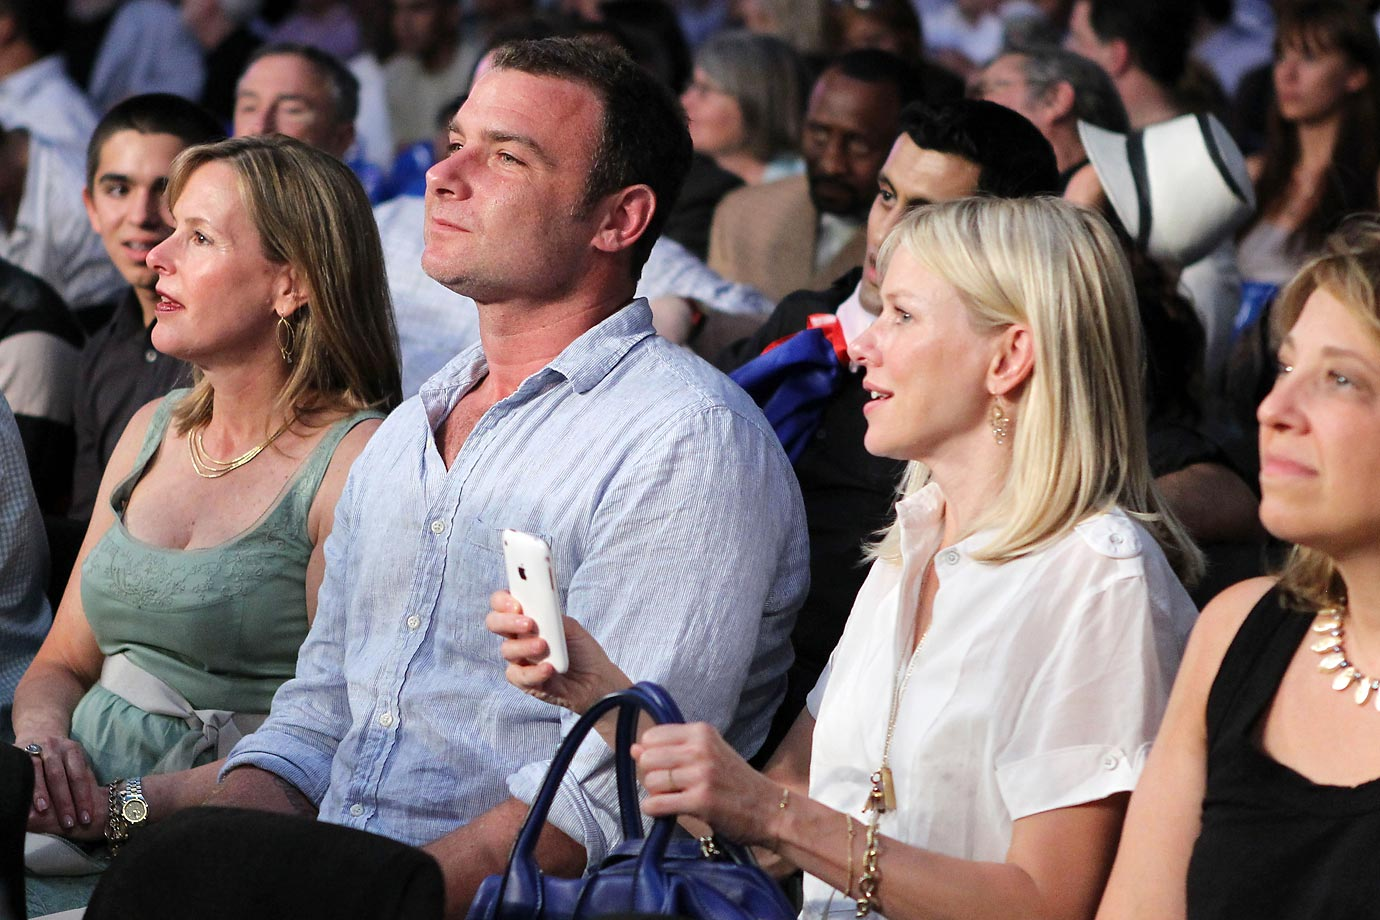 Liev Schreiber and actress Naomi Watts watch the bout between James Moore and Pawel Wolak.